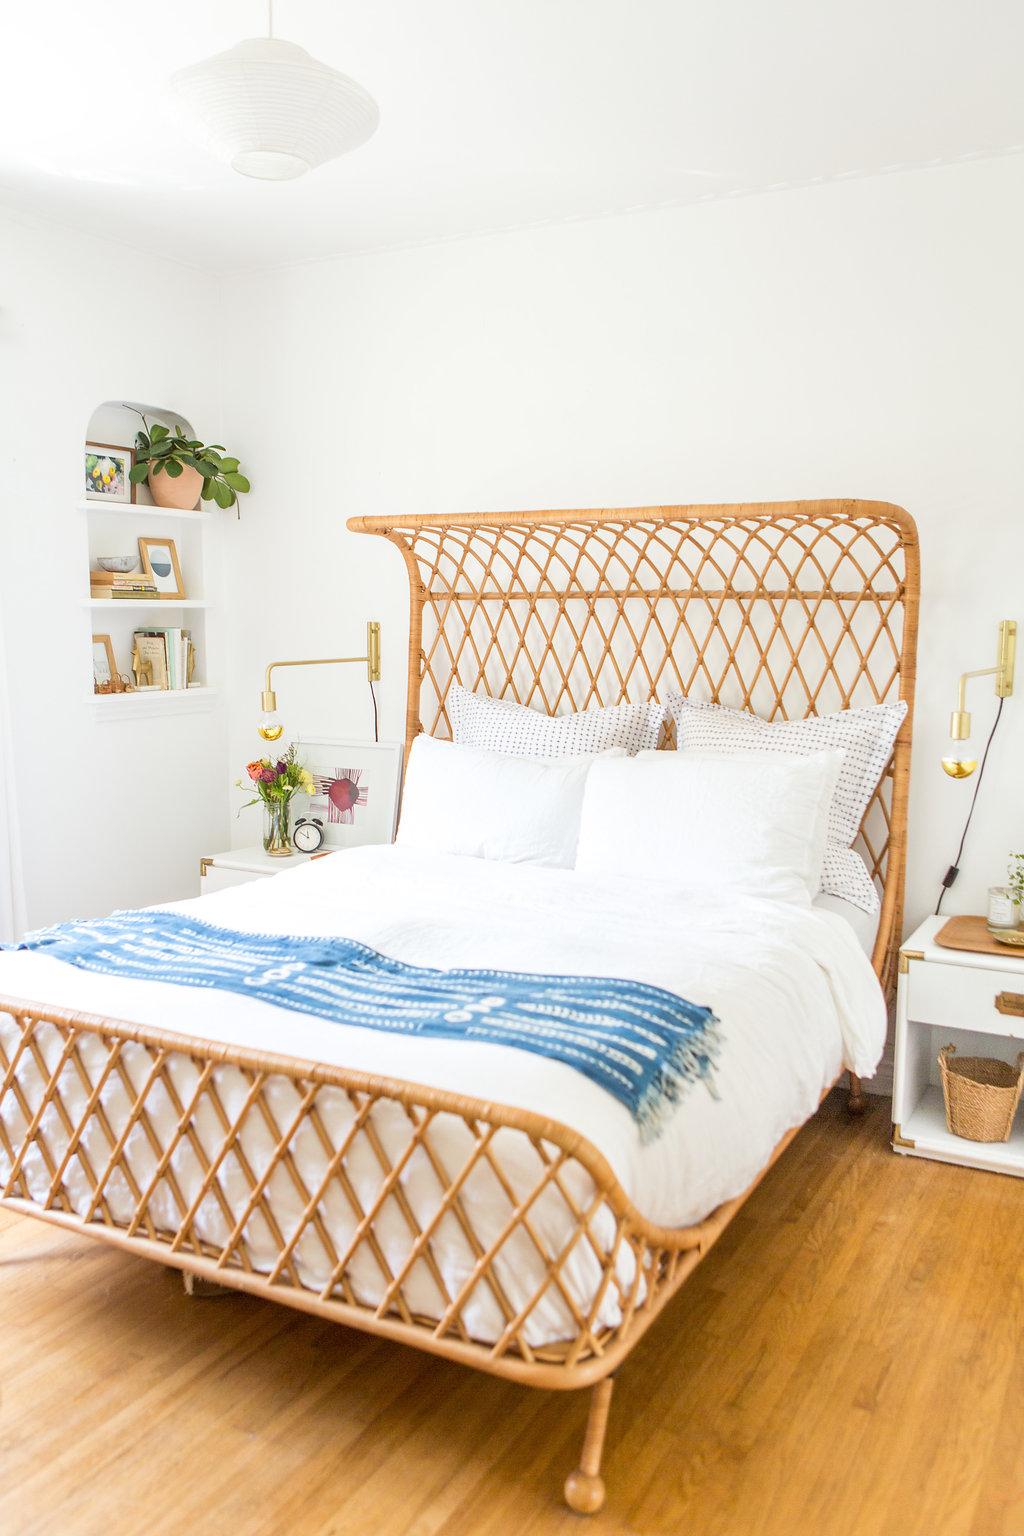 Get that casual, laid back boho coastal look in your bedroom in this post. // bright and airy bedroom, bohemian bedroom, blue, white, wood bedroom.